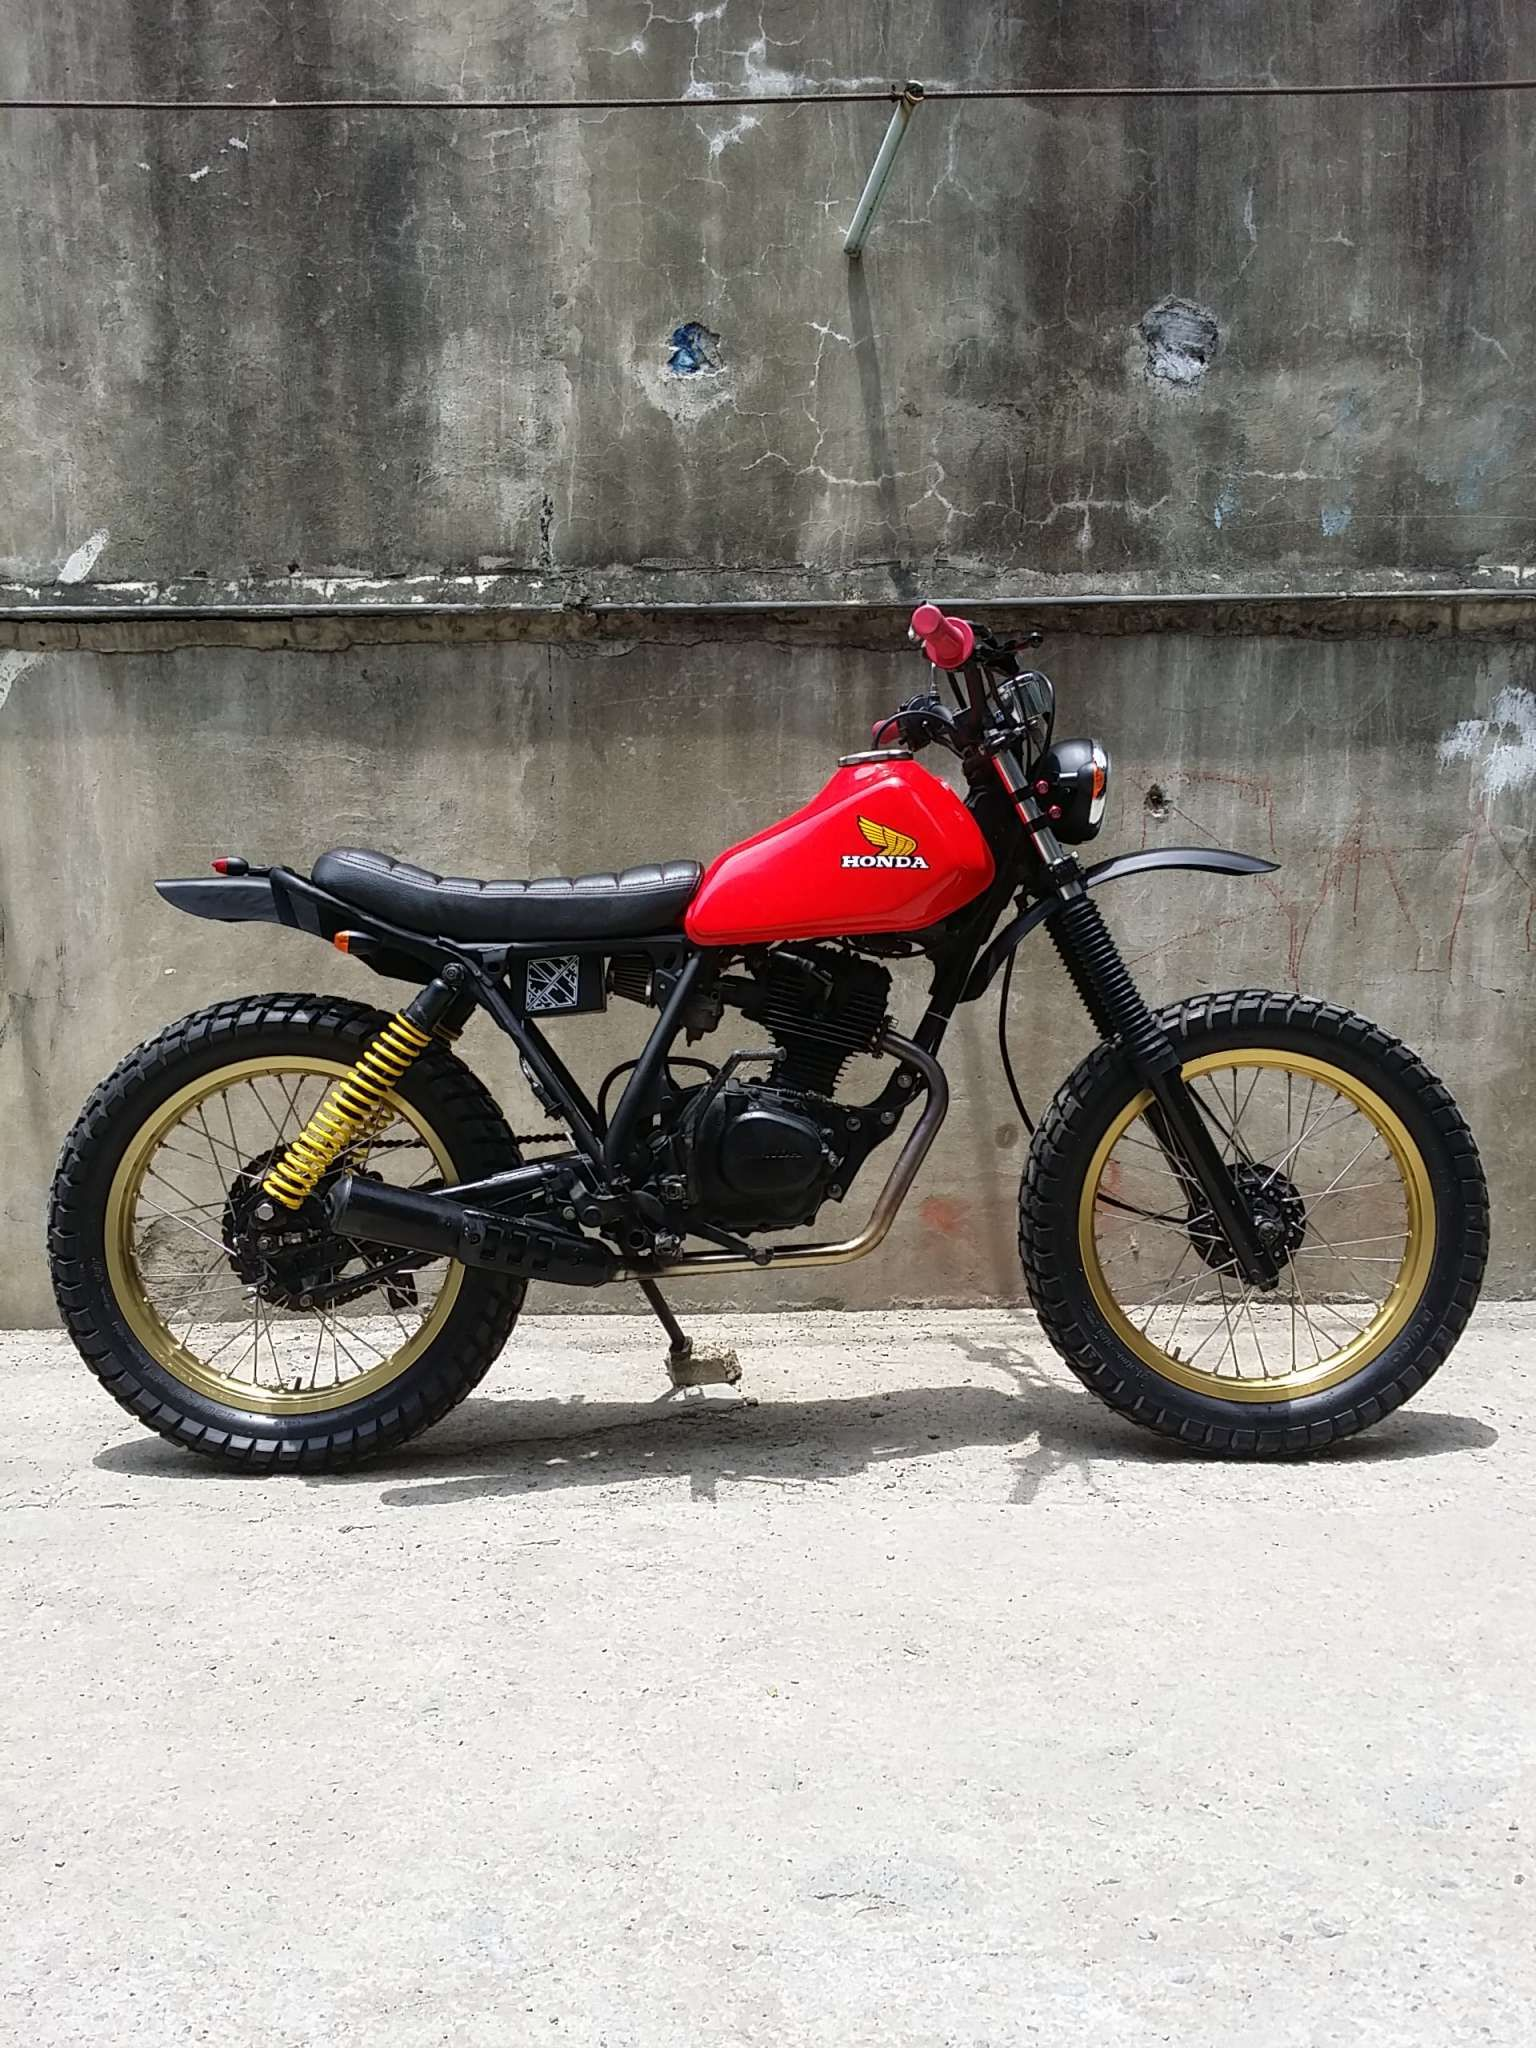 Honda motorcycles philippines website - Bike Feature Revolt Cycles Honda Xl125 Rvlt08 Cafe Racer Philippines